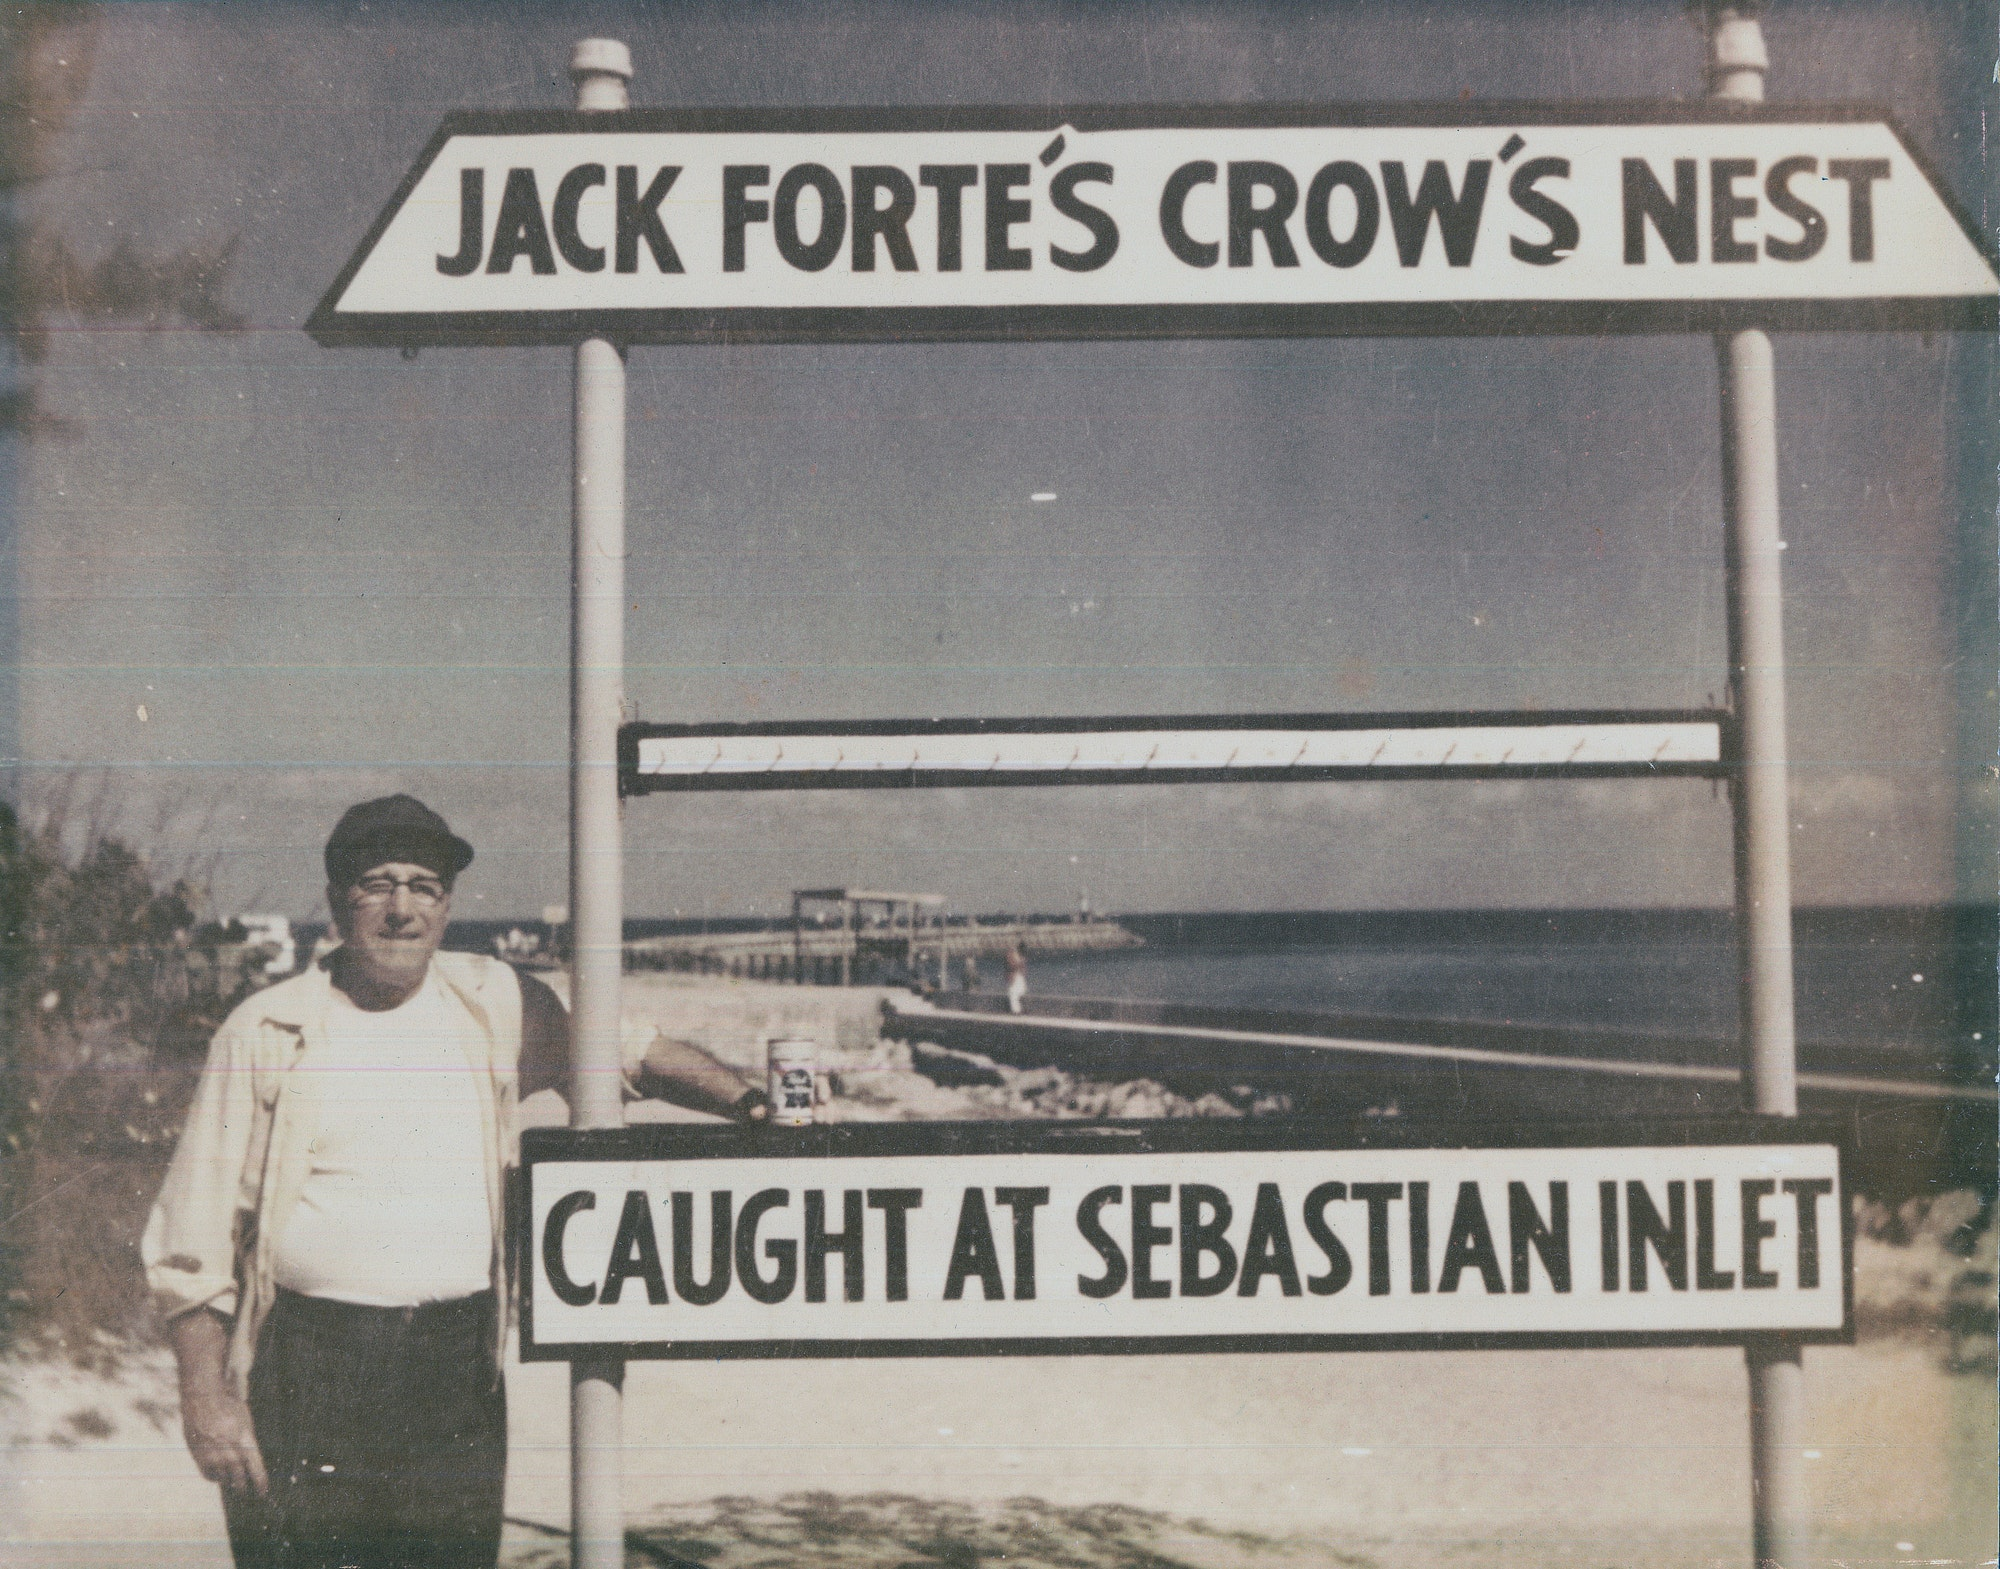 man standing in front of sign reading Jack Forte's Crow's Nest, Caught at Sebastian Inlet